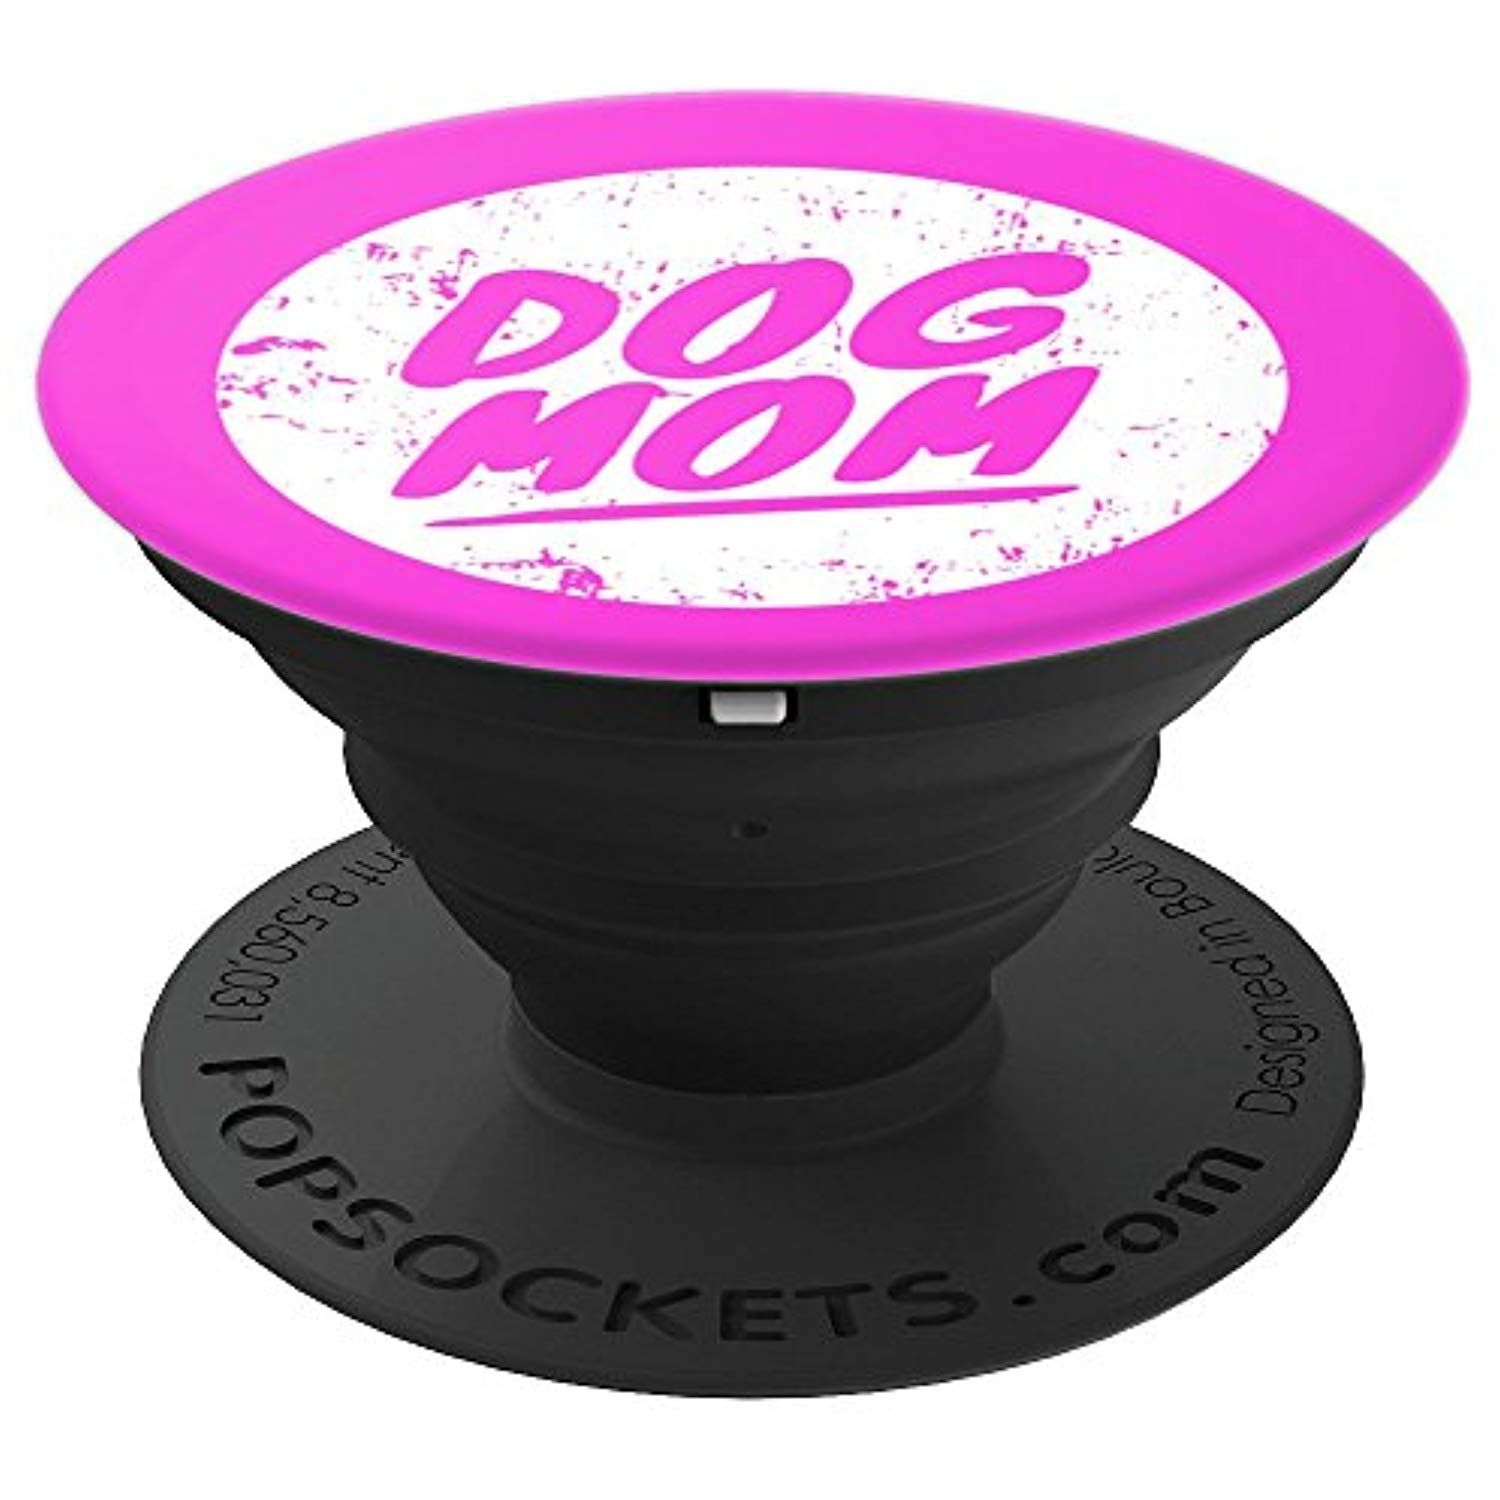 Dog mom cute puppy lover accessories popsockets grip and stand